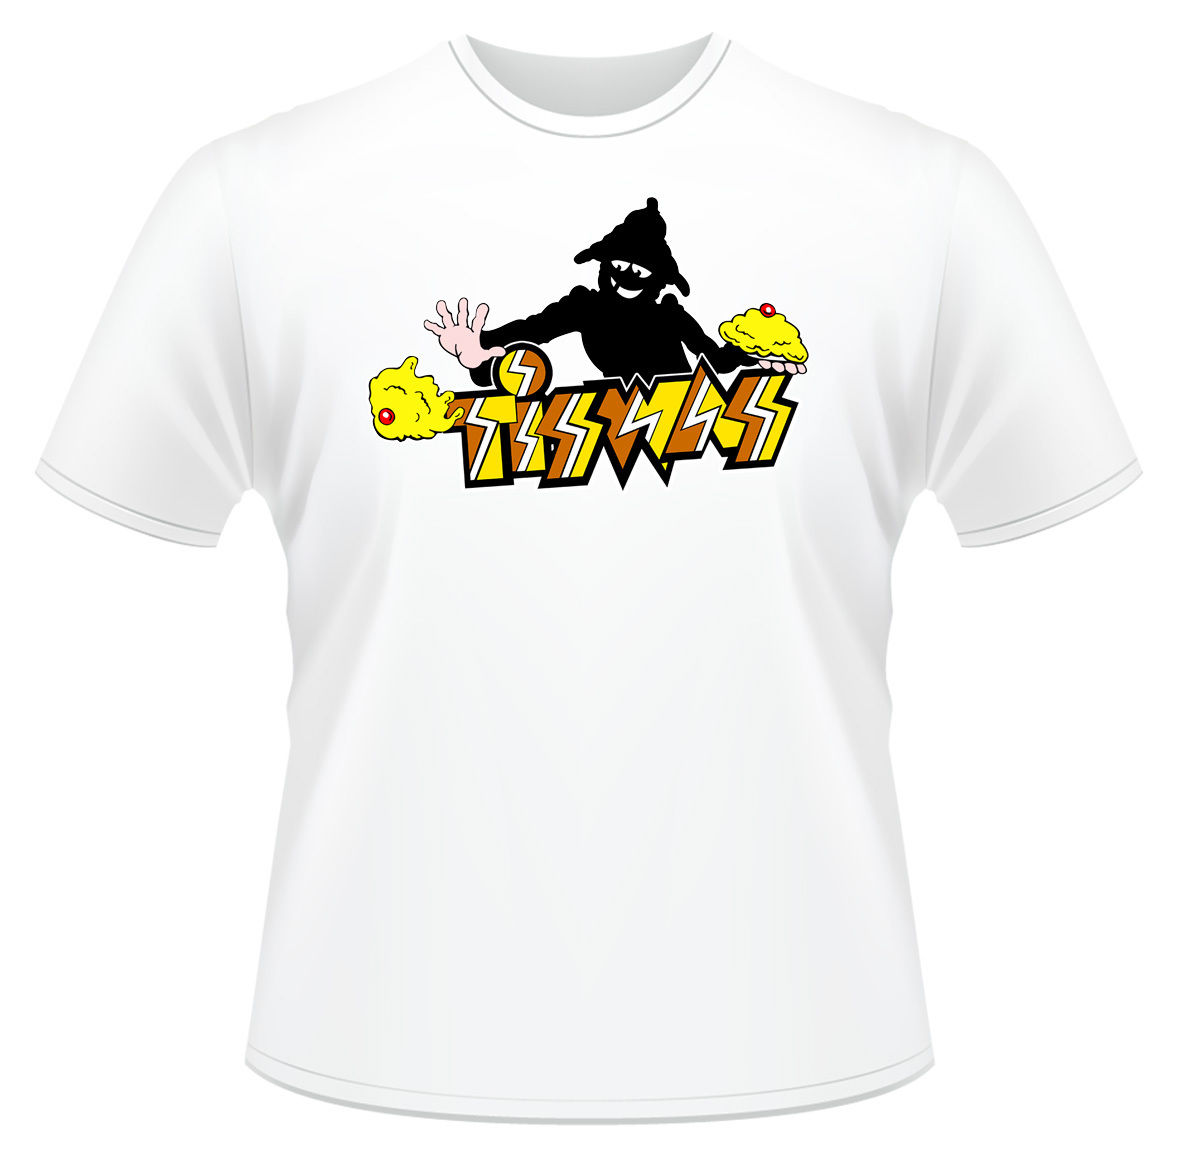 Mens T Shirt Tiswas 3 Ideal Gift or Present New T Shirts Funny Tops Tee New Unisex Funny High Quality Casual Printing in T Shirts from Men 39 s Clothing